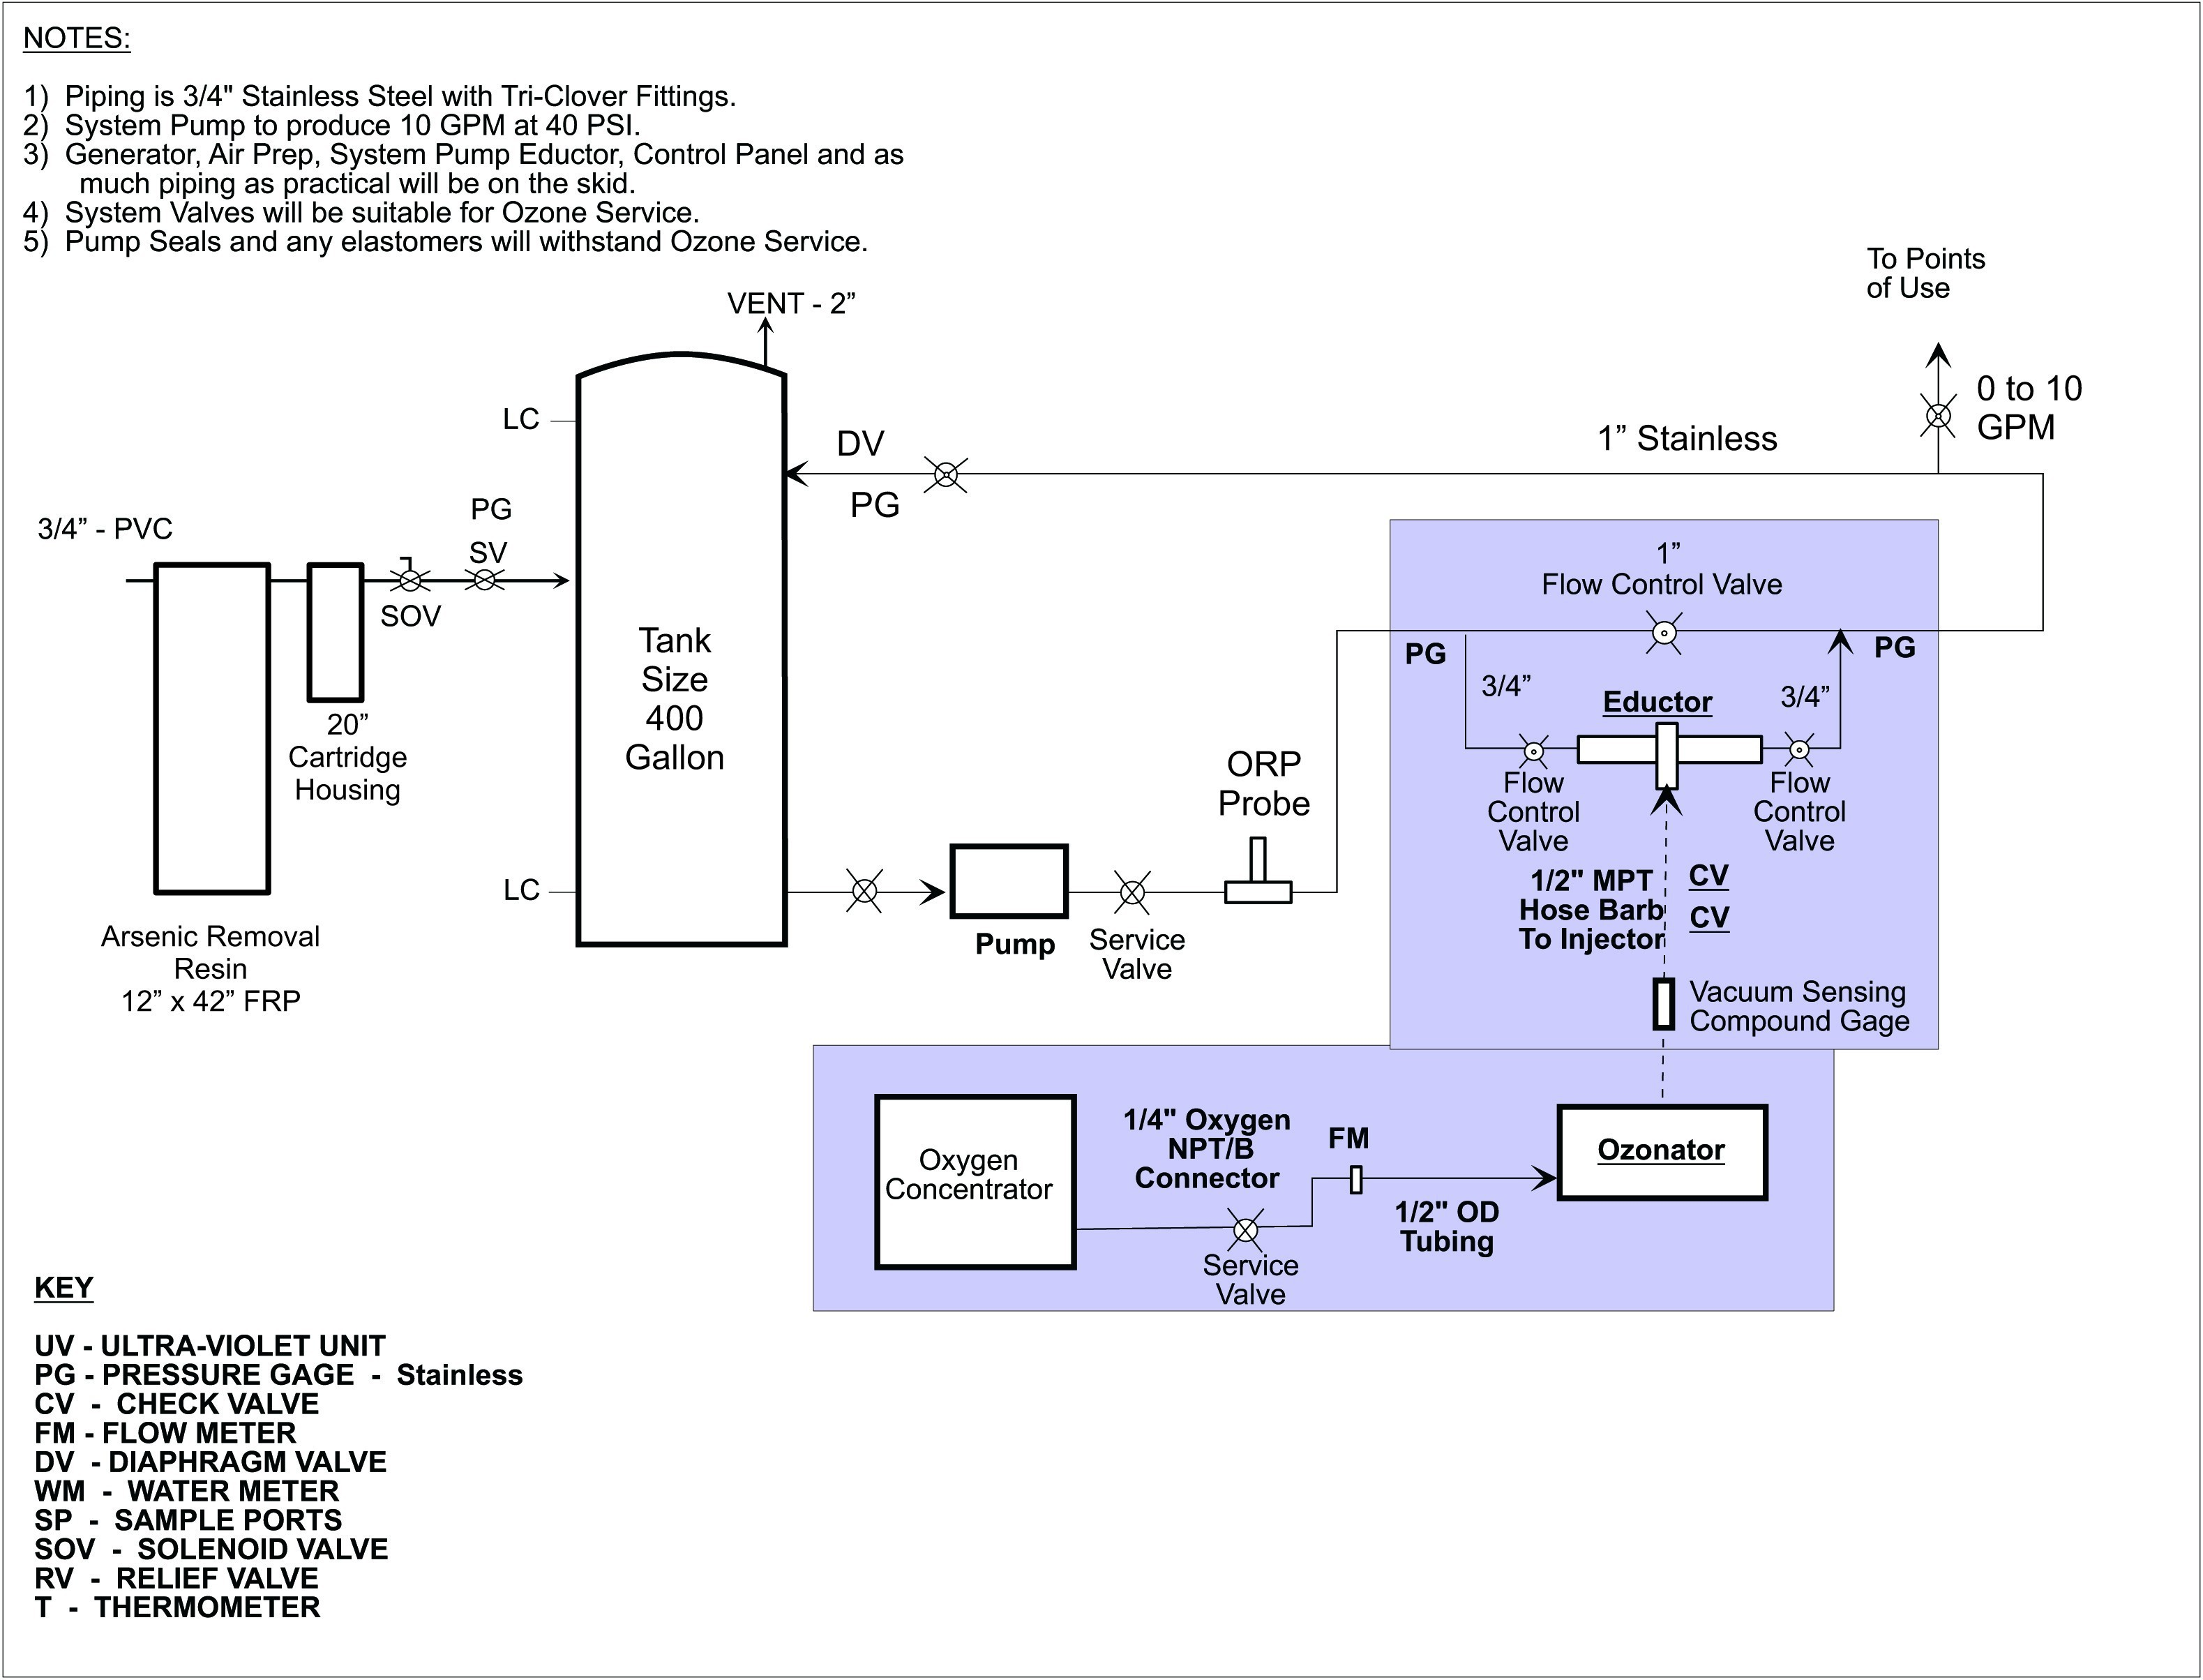 Wiring Diagram For Concession Trailer Valid Food Truck Water System Diagram  Food And Beverage Bottled Water